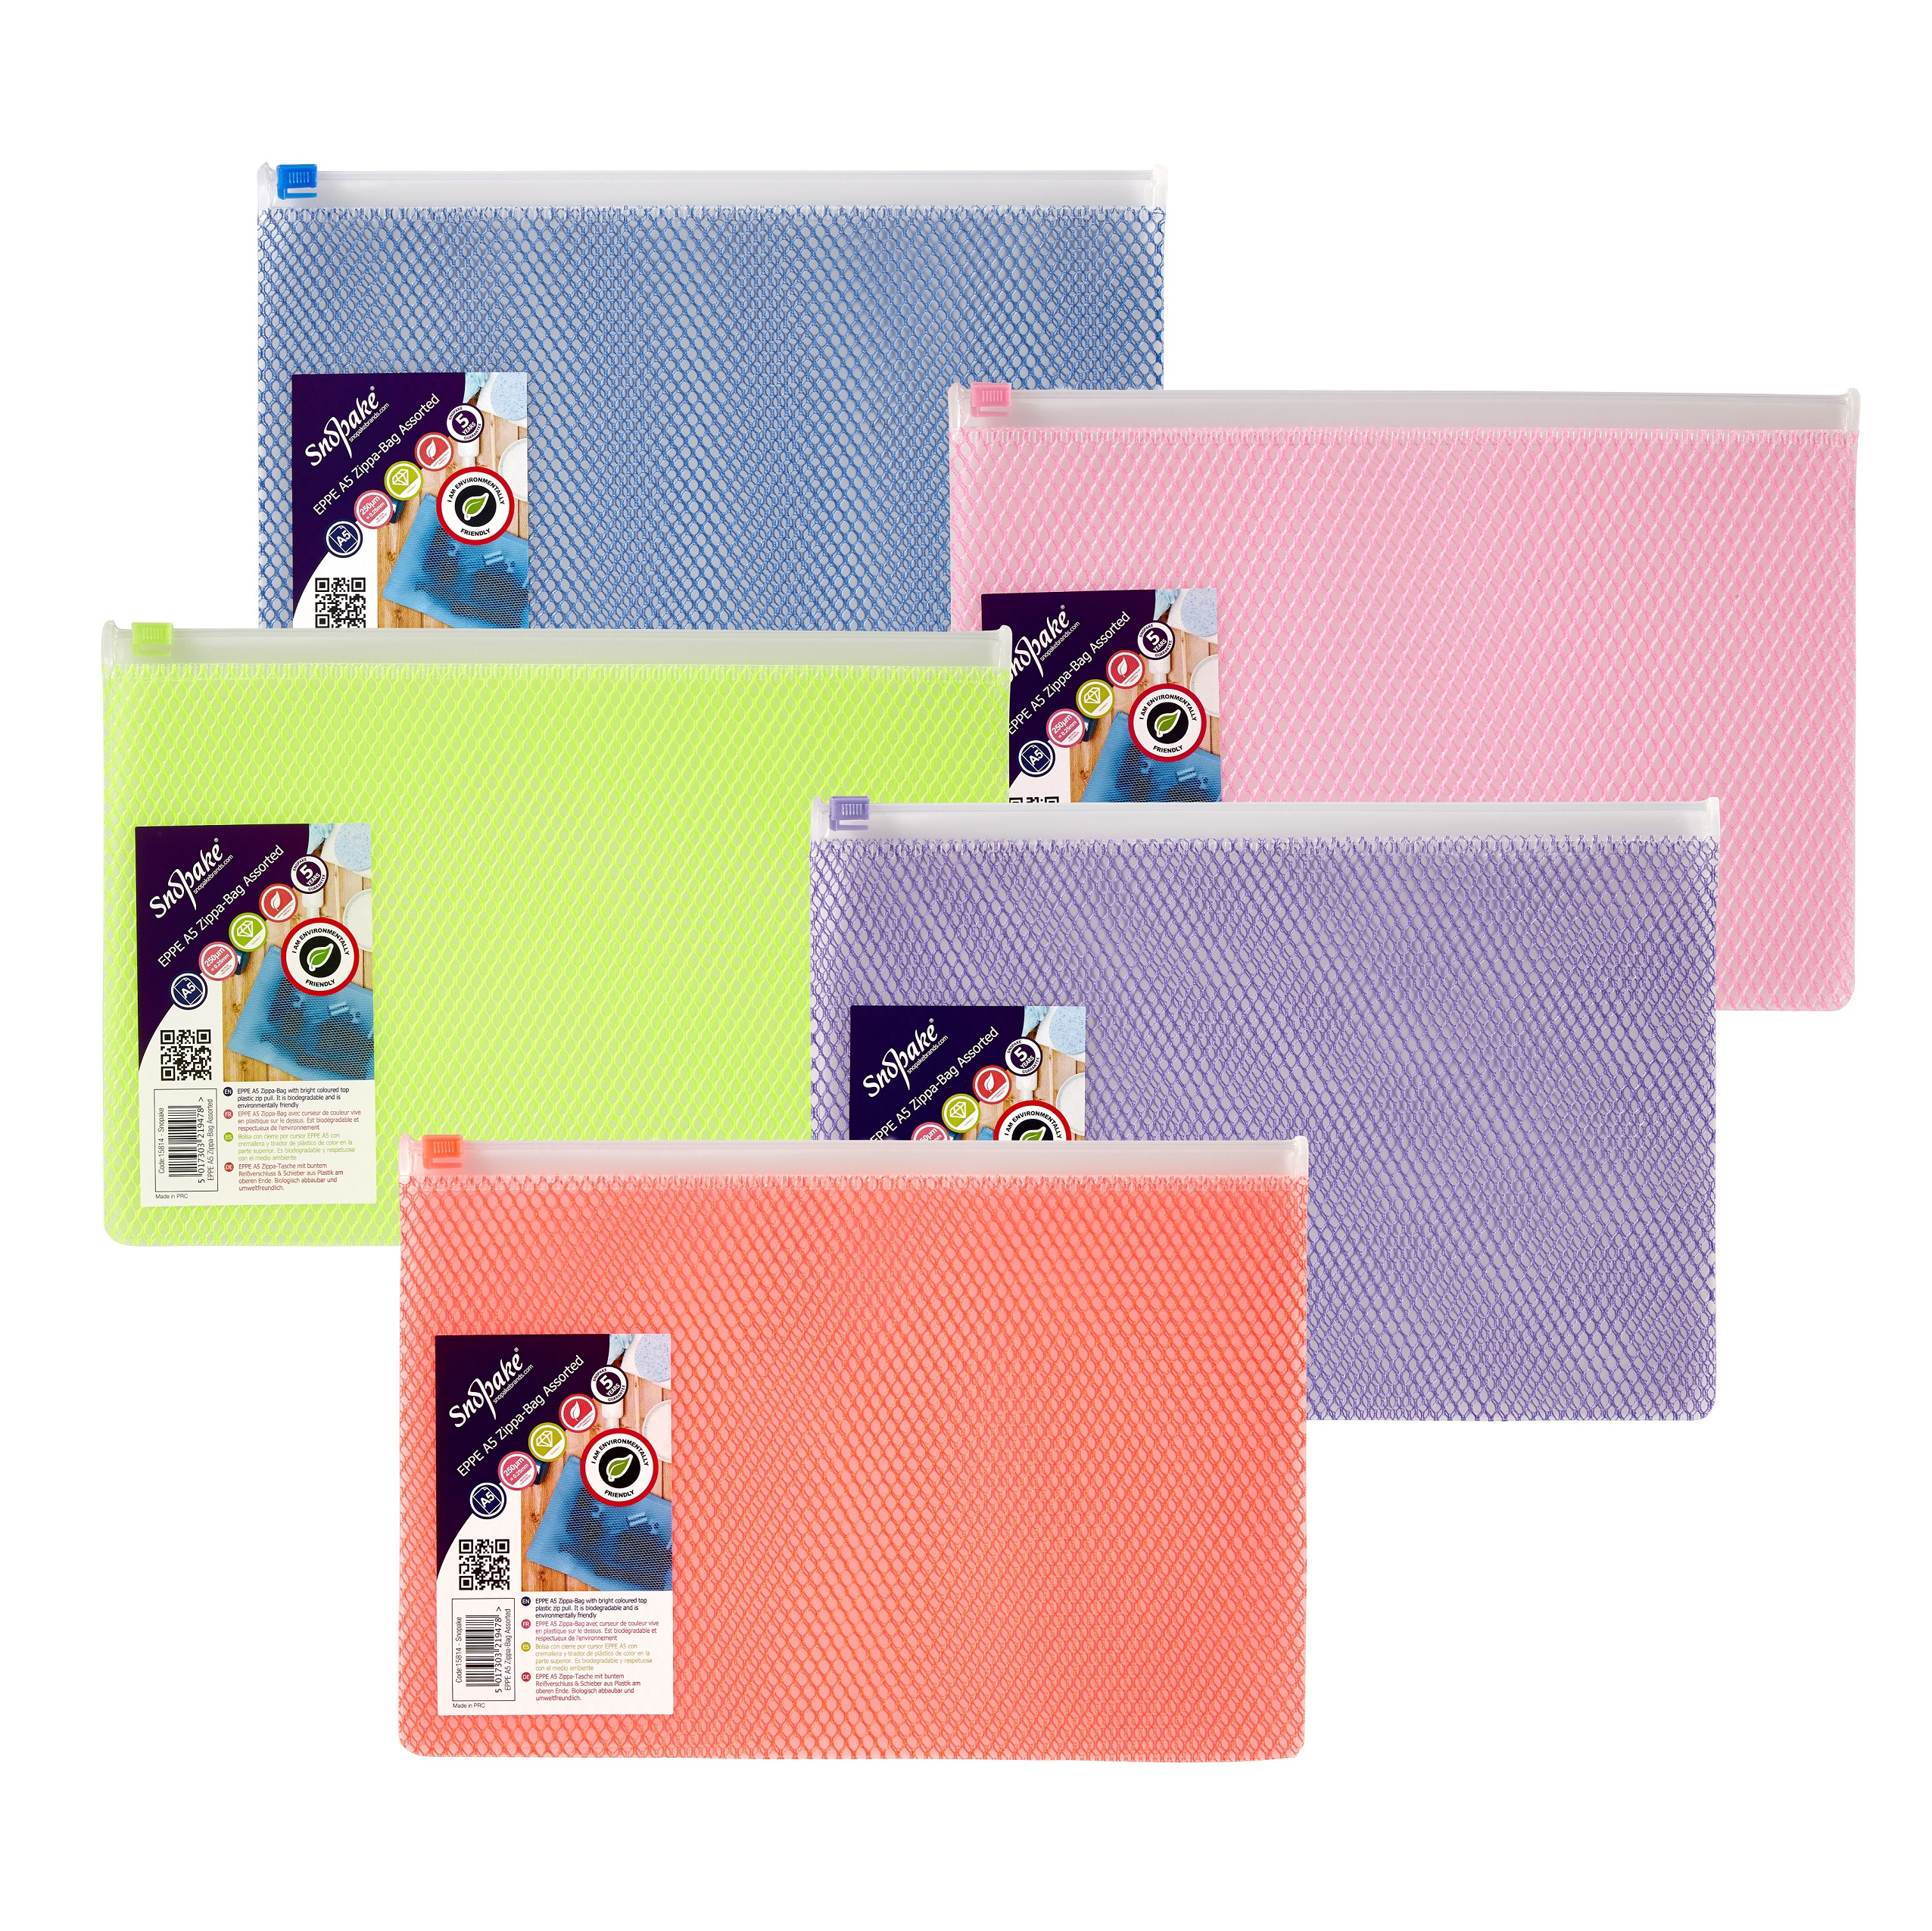 Zip Bags Snopake EPPE Zippa Bag A5 Assorted Pack 5